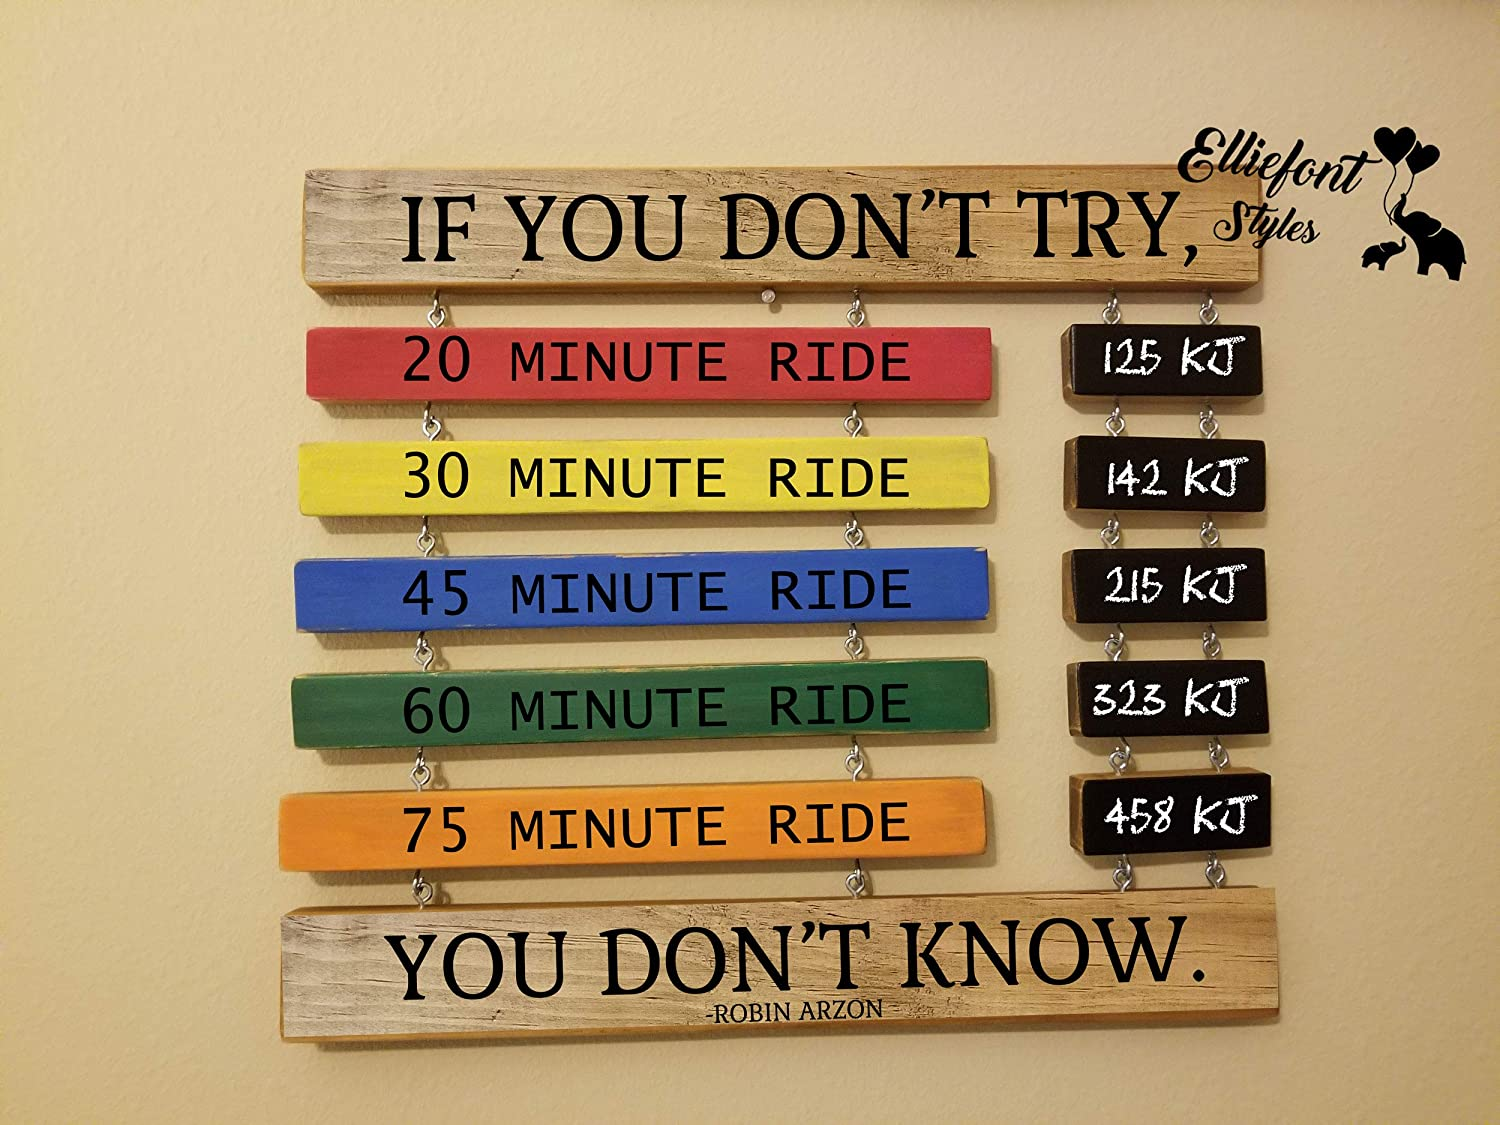 Calkboard LB Name Primary Colors Peloton Coach Quotes Wooden Sign Cycling Running Peloton PR Time Display Personal Record